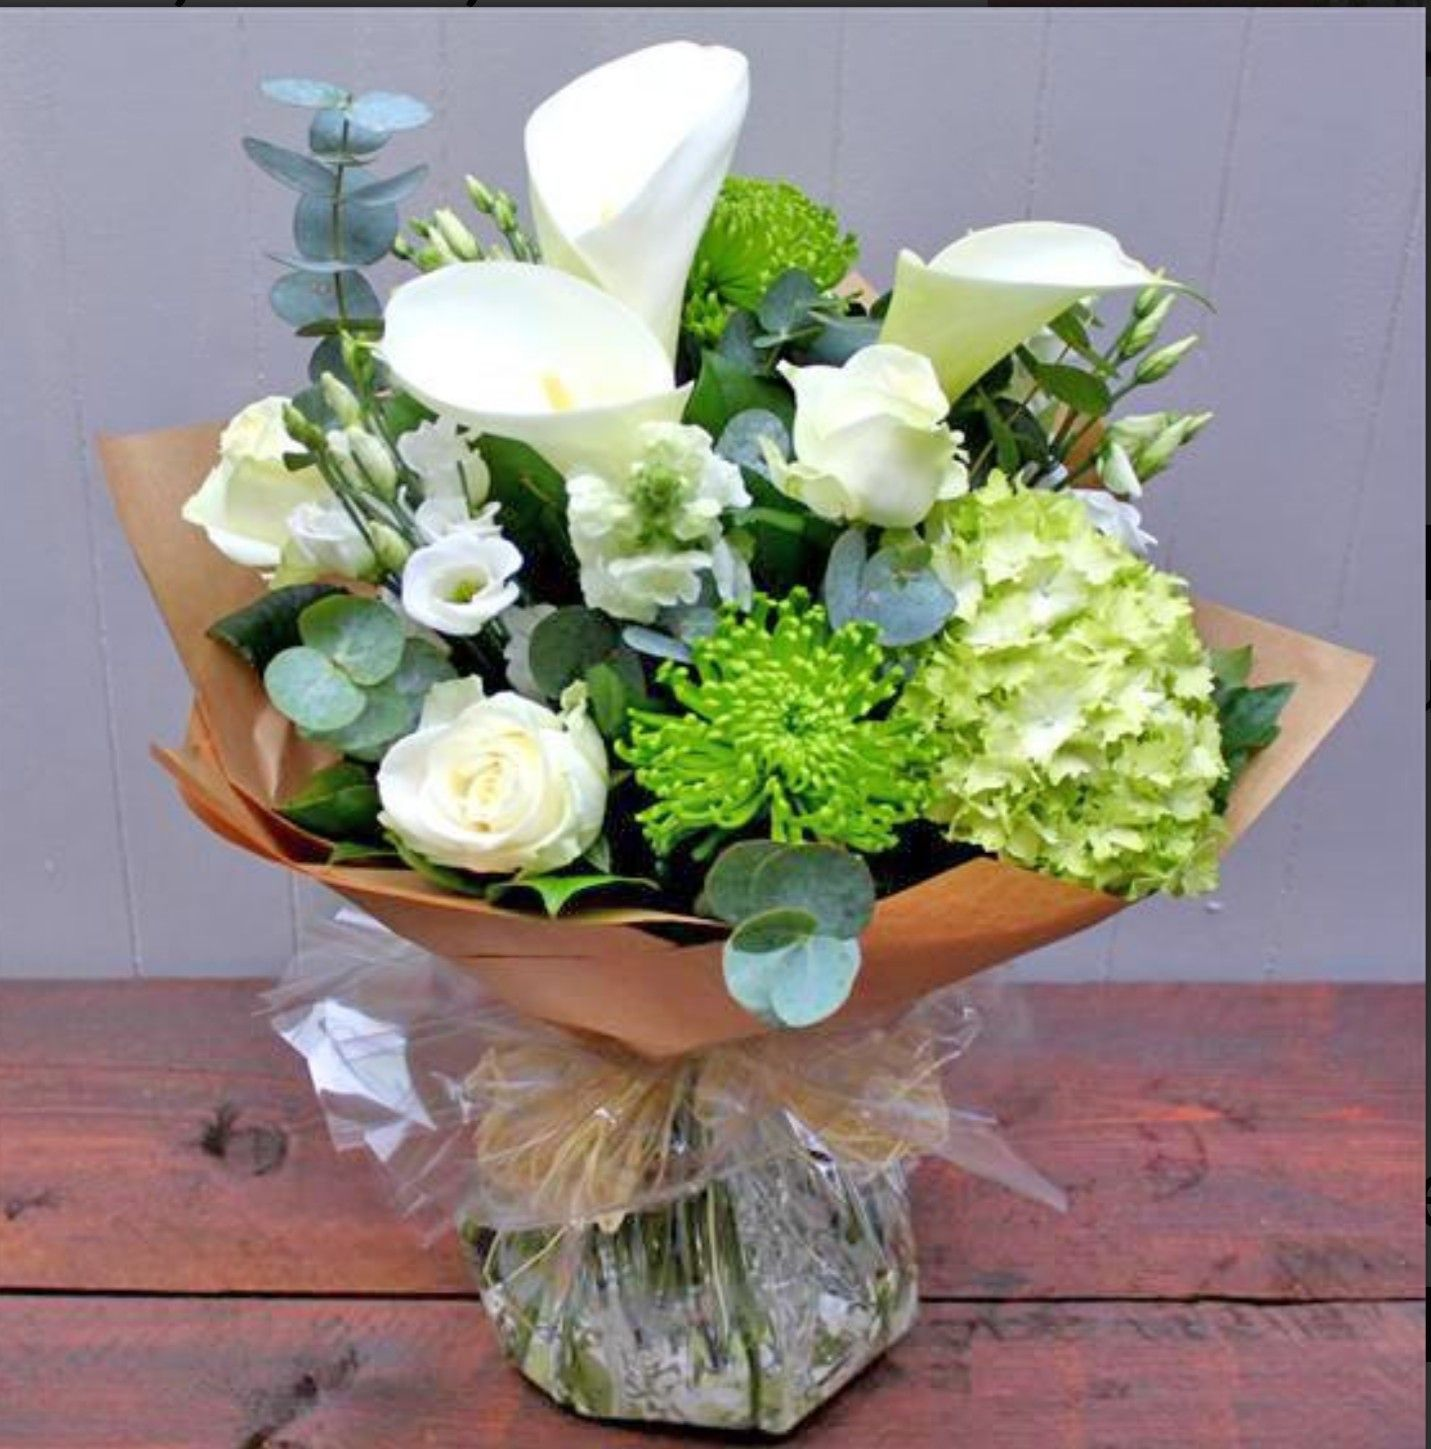 Simple And Stylish This White And Green Hand Tied Bouquet Brings